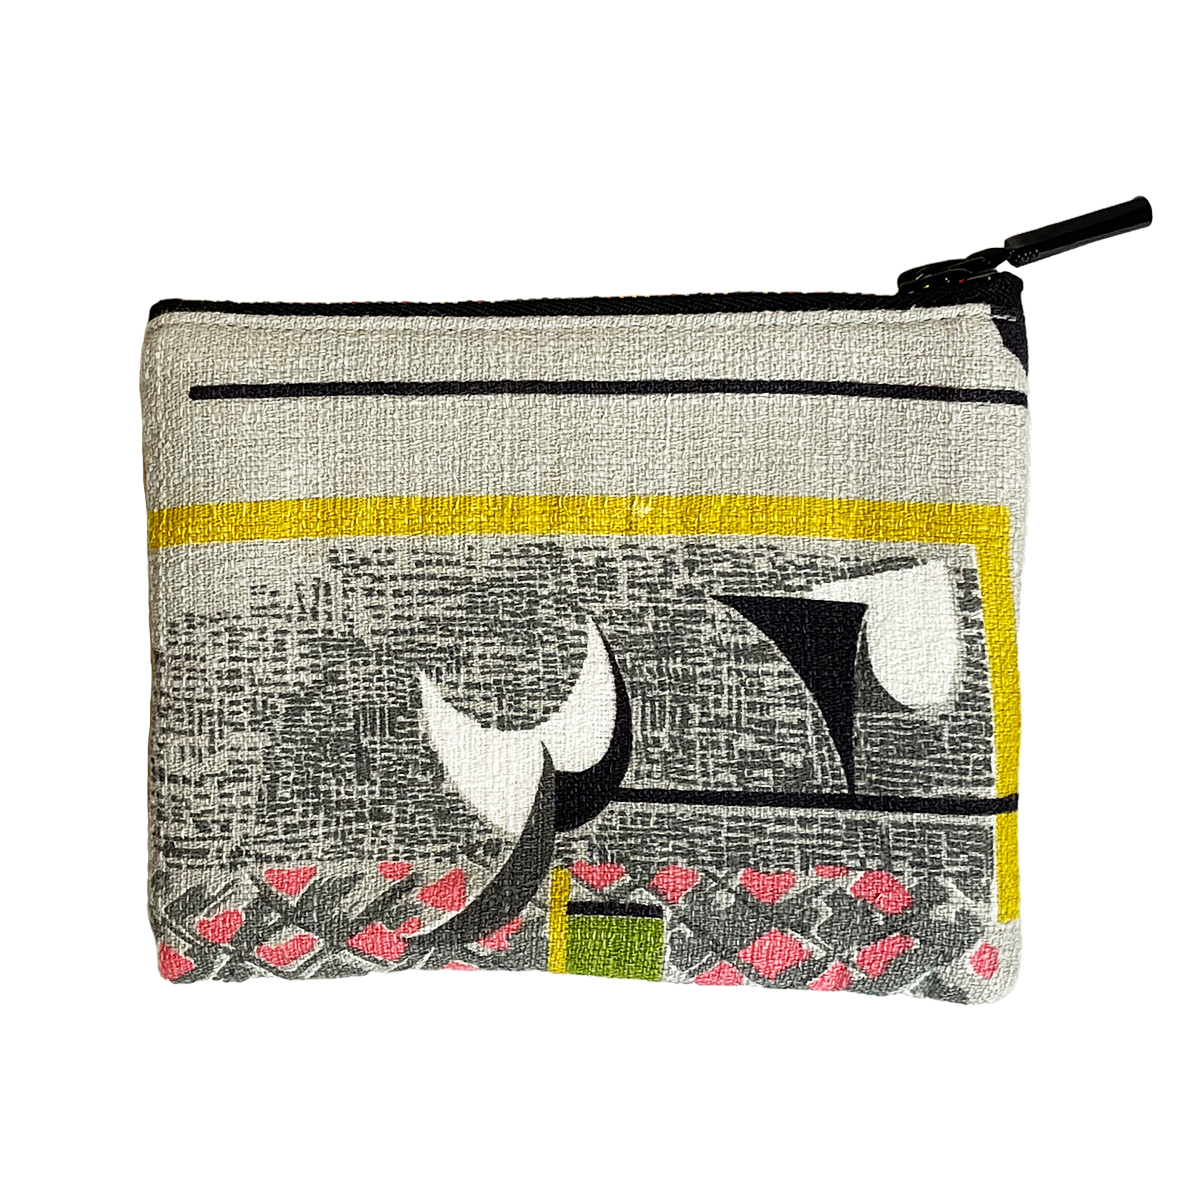 Coin Purse – Mid Century Modern Shapes